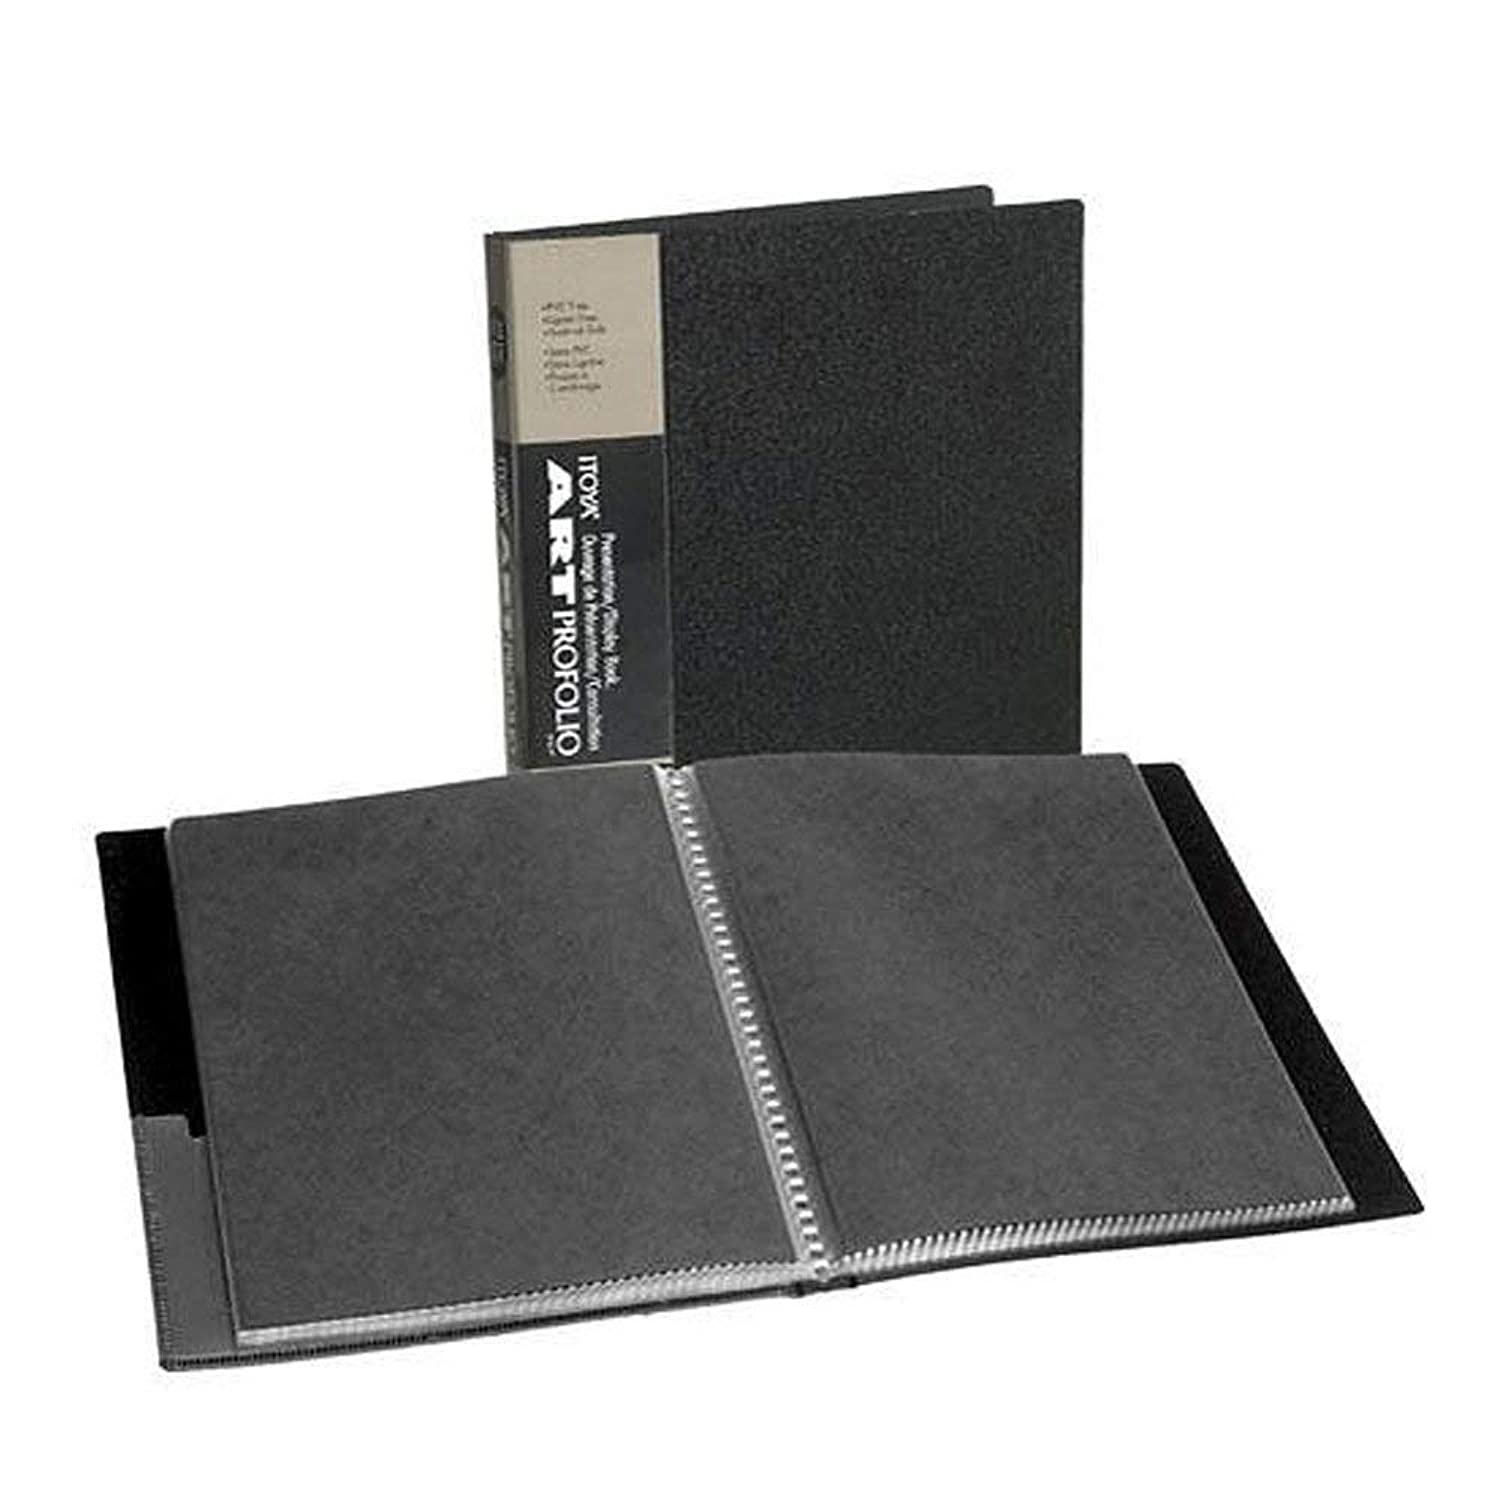 ITOYA 18 inch x 24 inch Original Art Profolio Presentation Book/Portfolio- for Art, Photography, and Documents wtayhe5255090